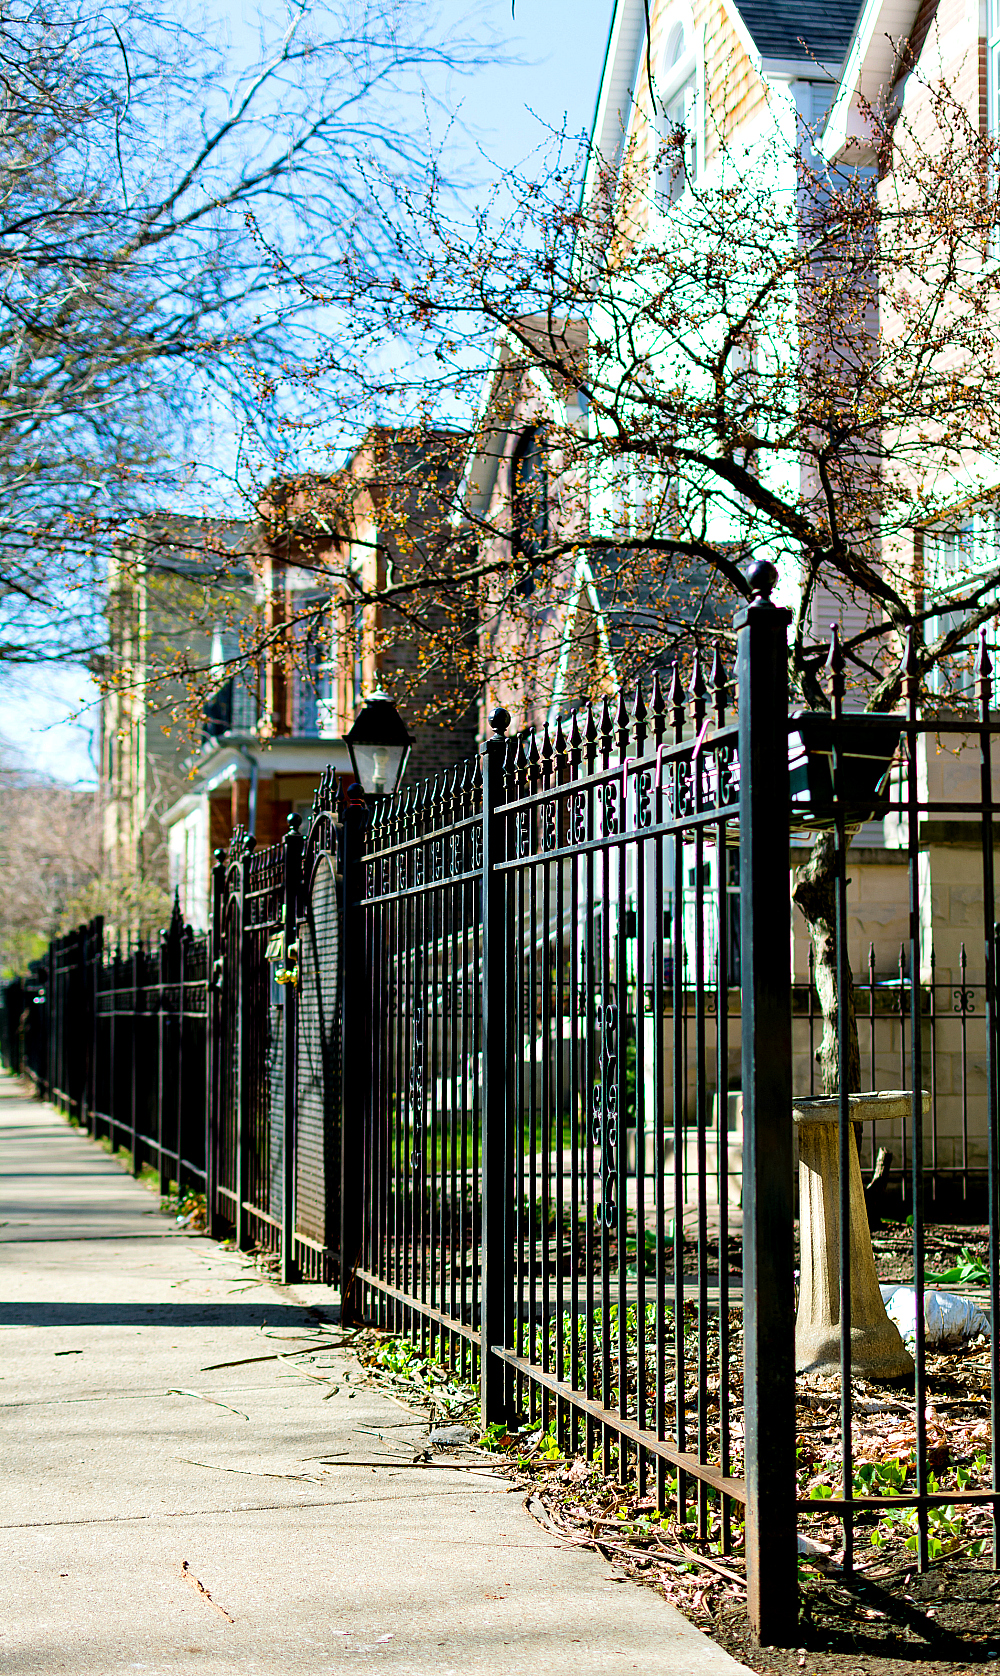 Iron Fences in Chicago Lakeview Neighborhood